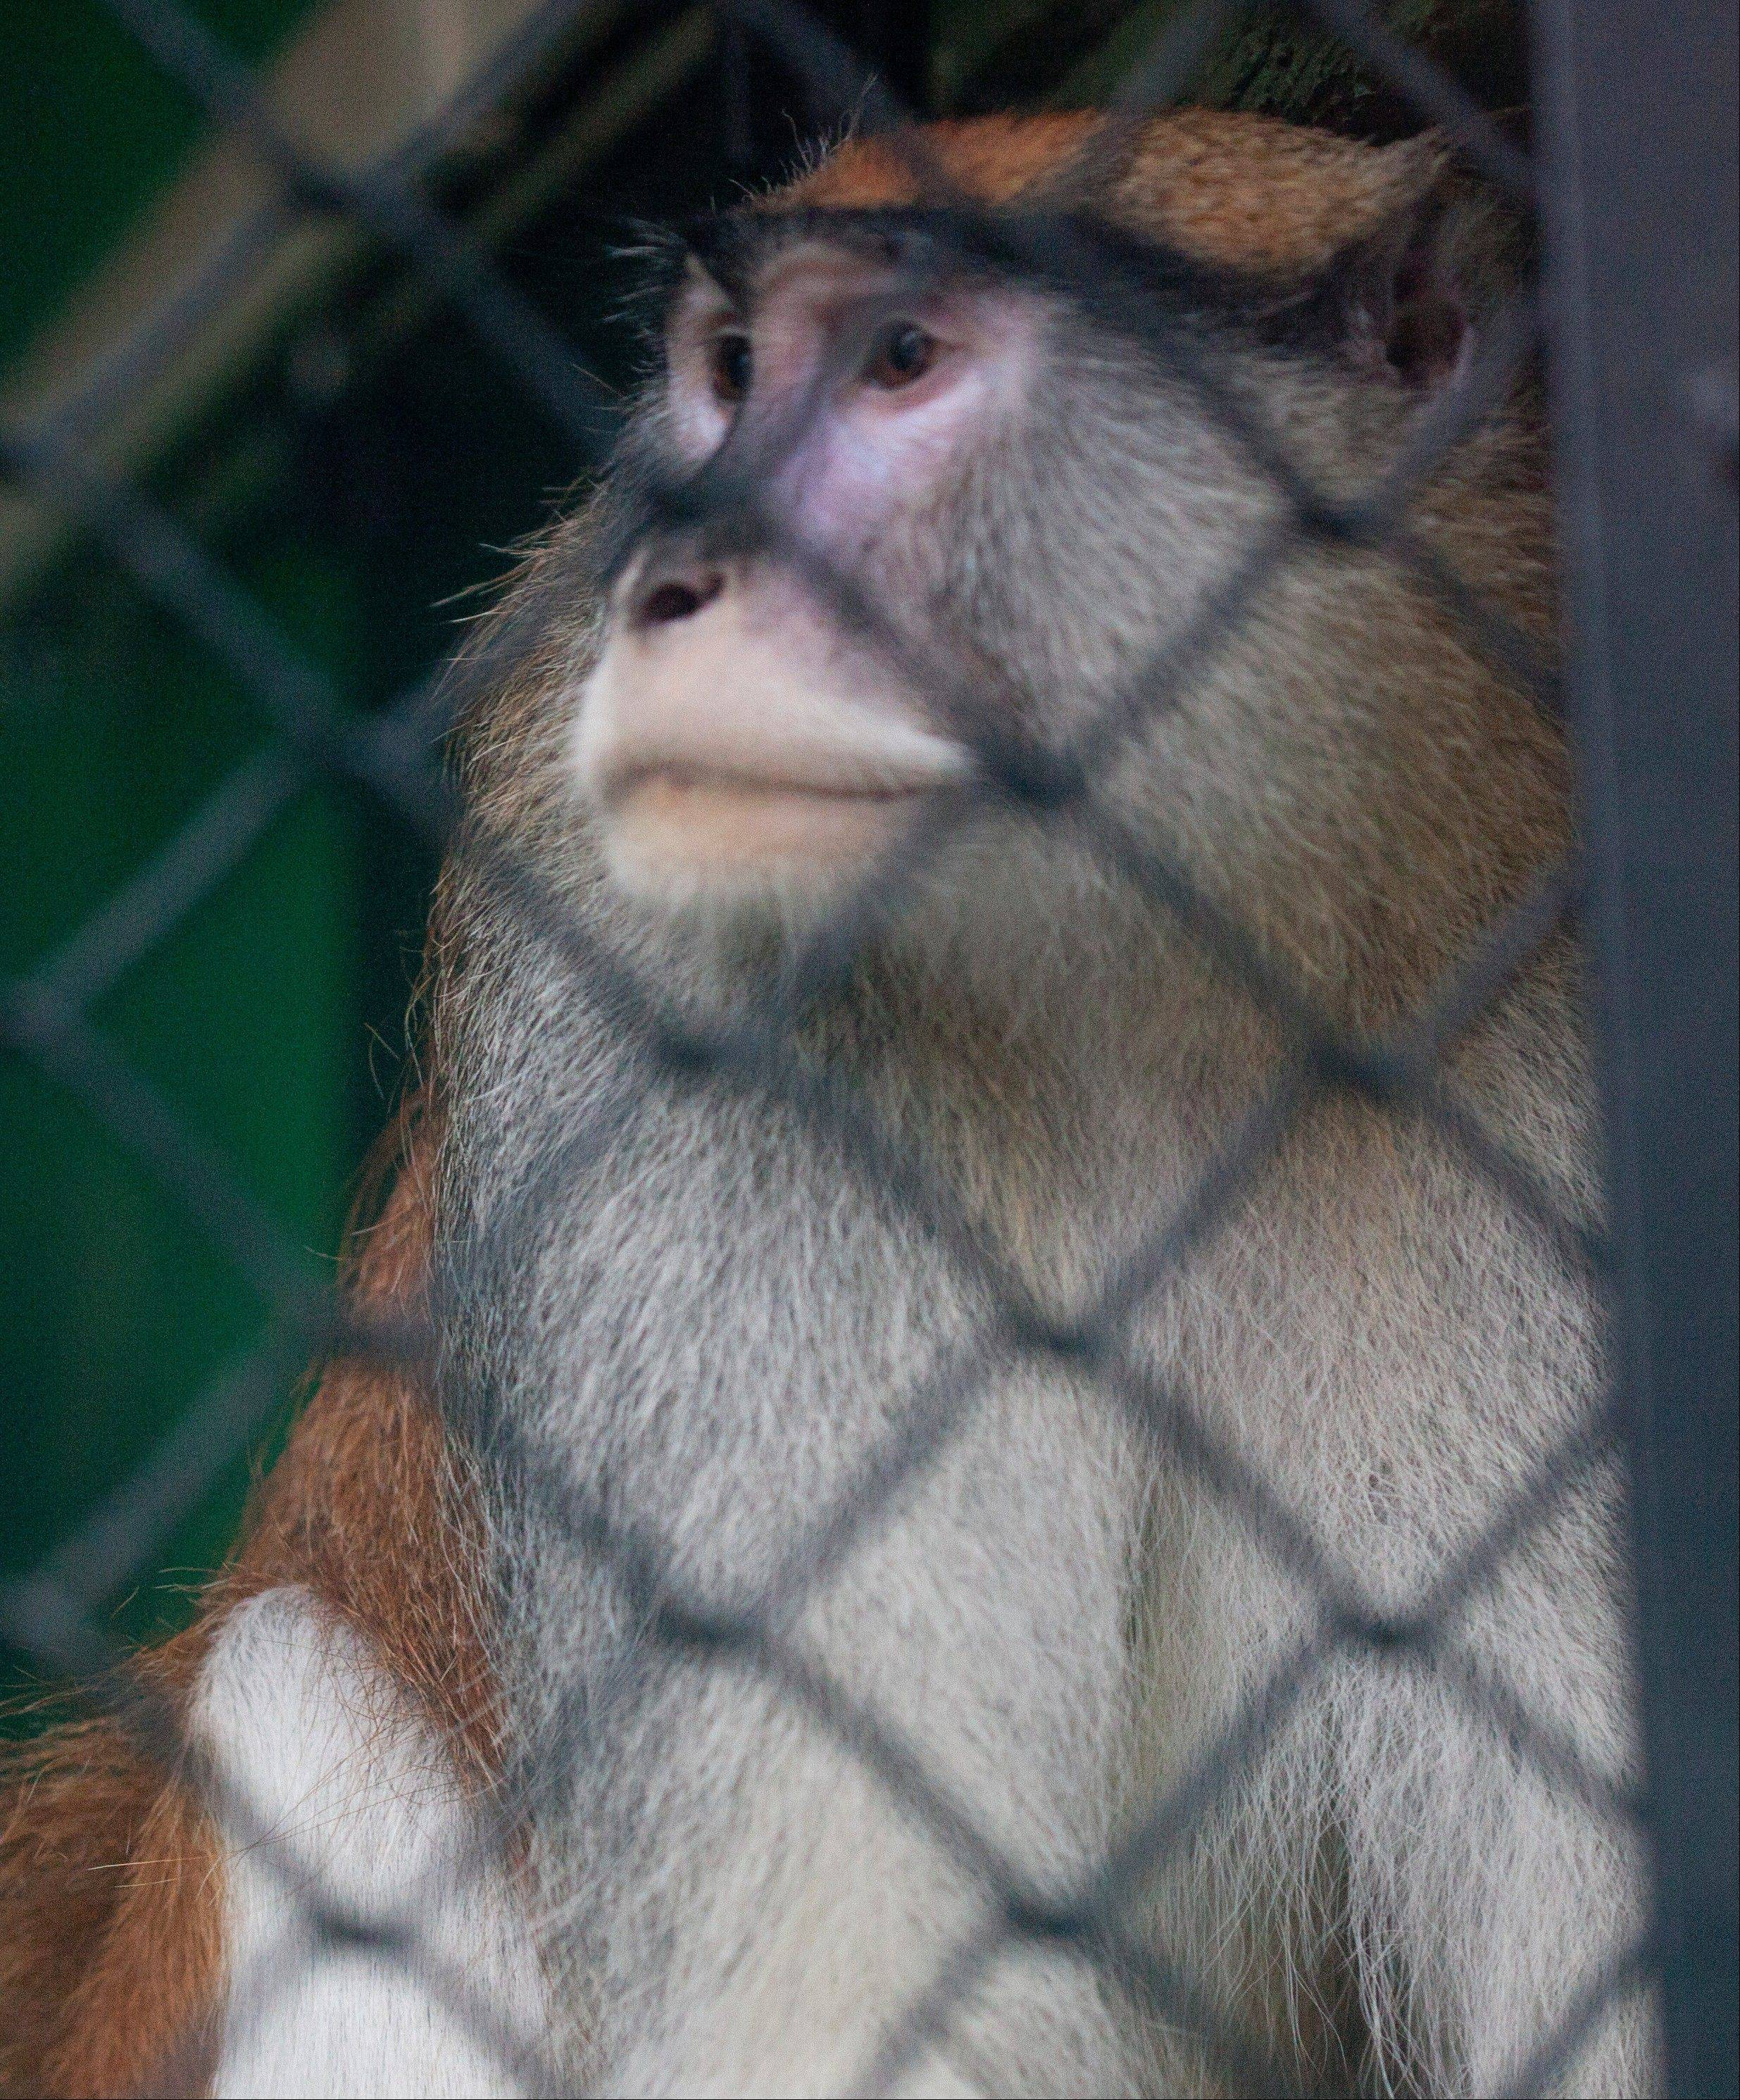 A Patas monkey looks out of his cage at Zoo Boise Saturday after his cage mate was severely injured and died in Boise, Idaho. The injured monkey was found shortly after suspects were spotted and ran off.